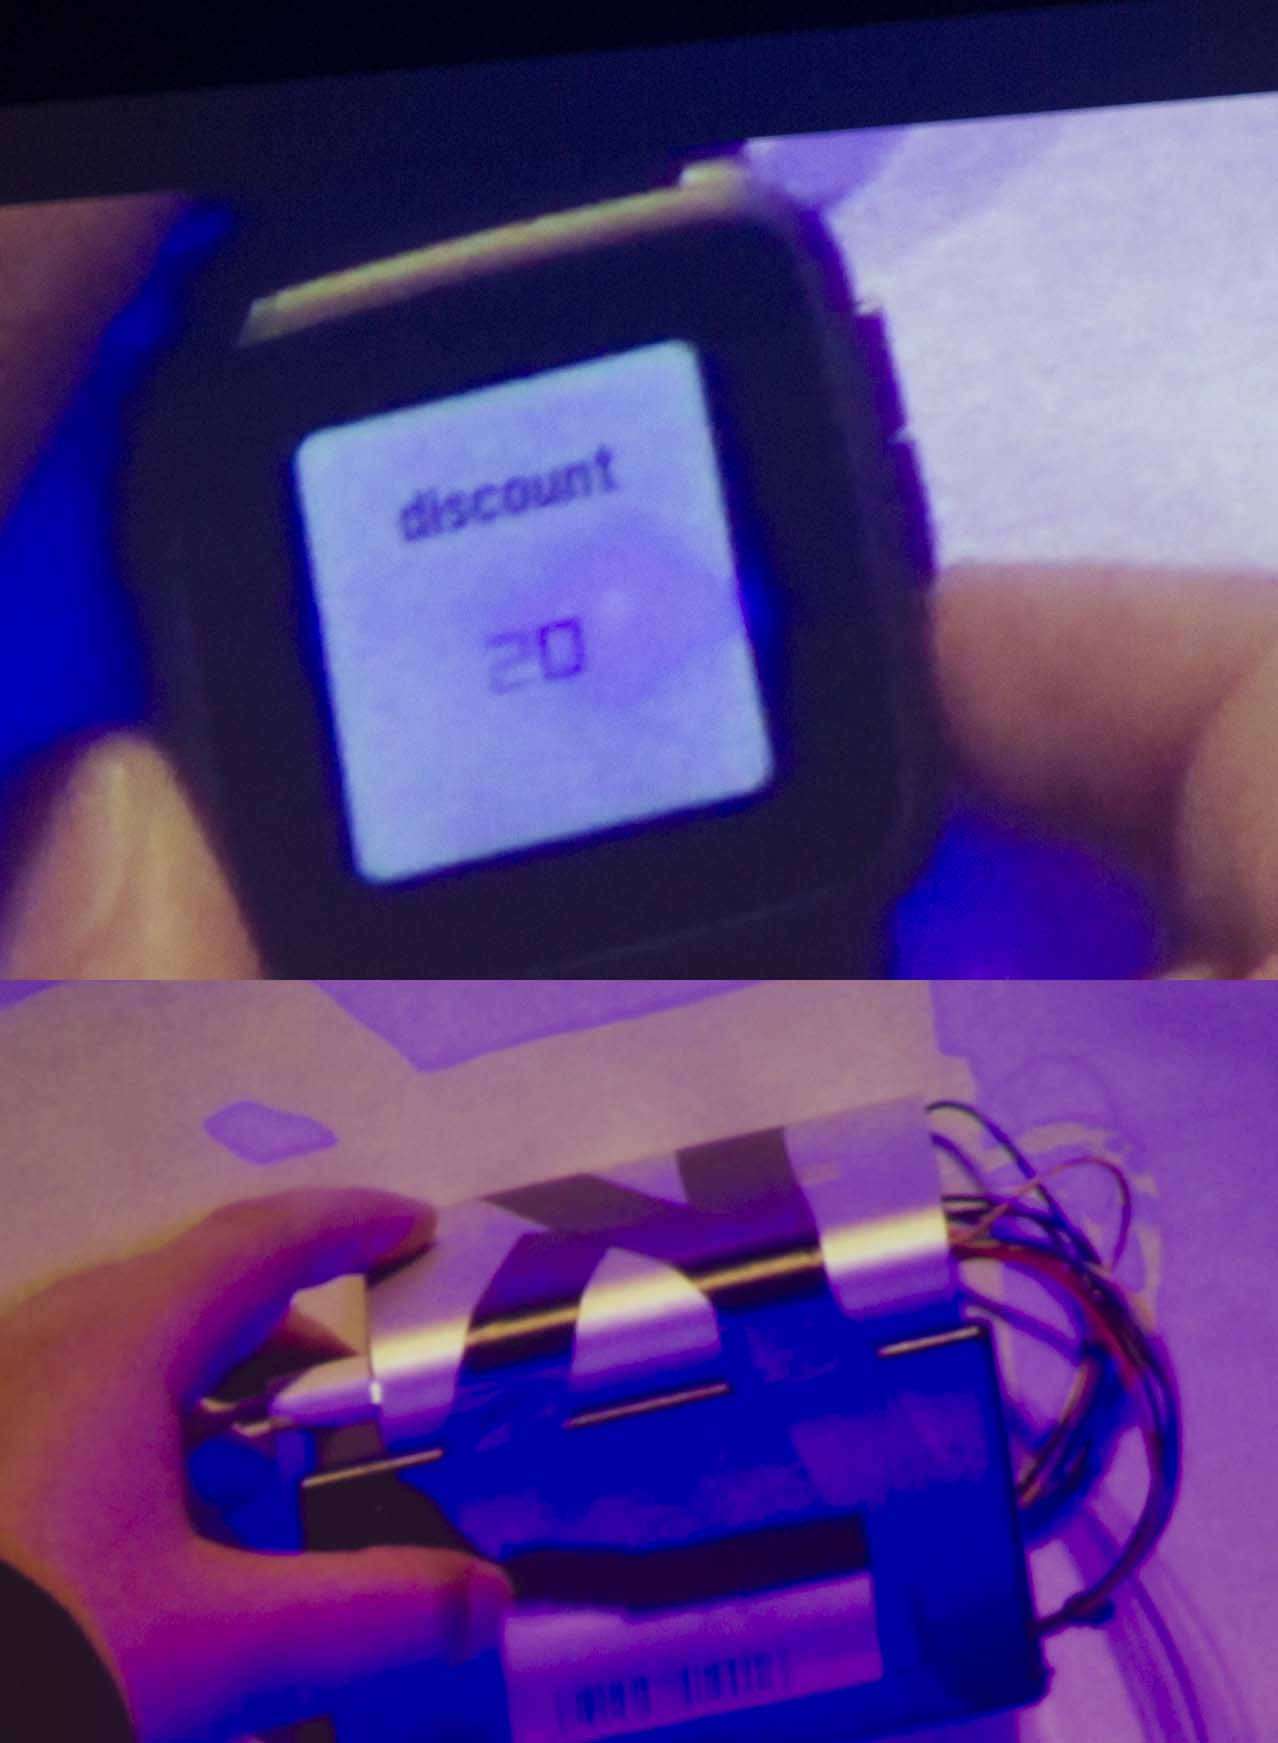 Barcode generating app (above), with the barcode printer.